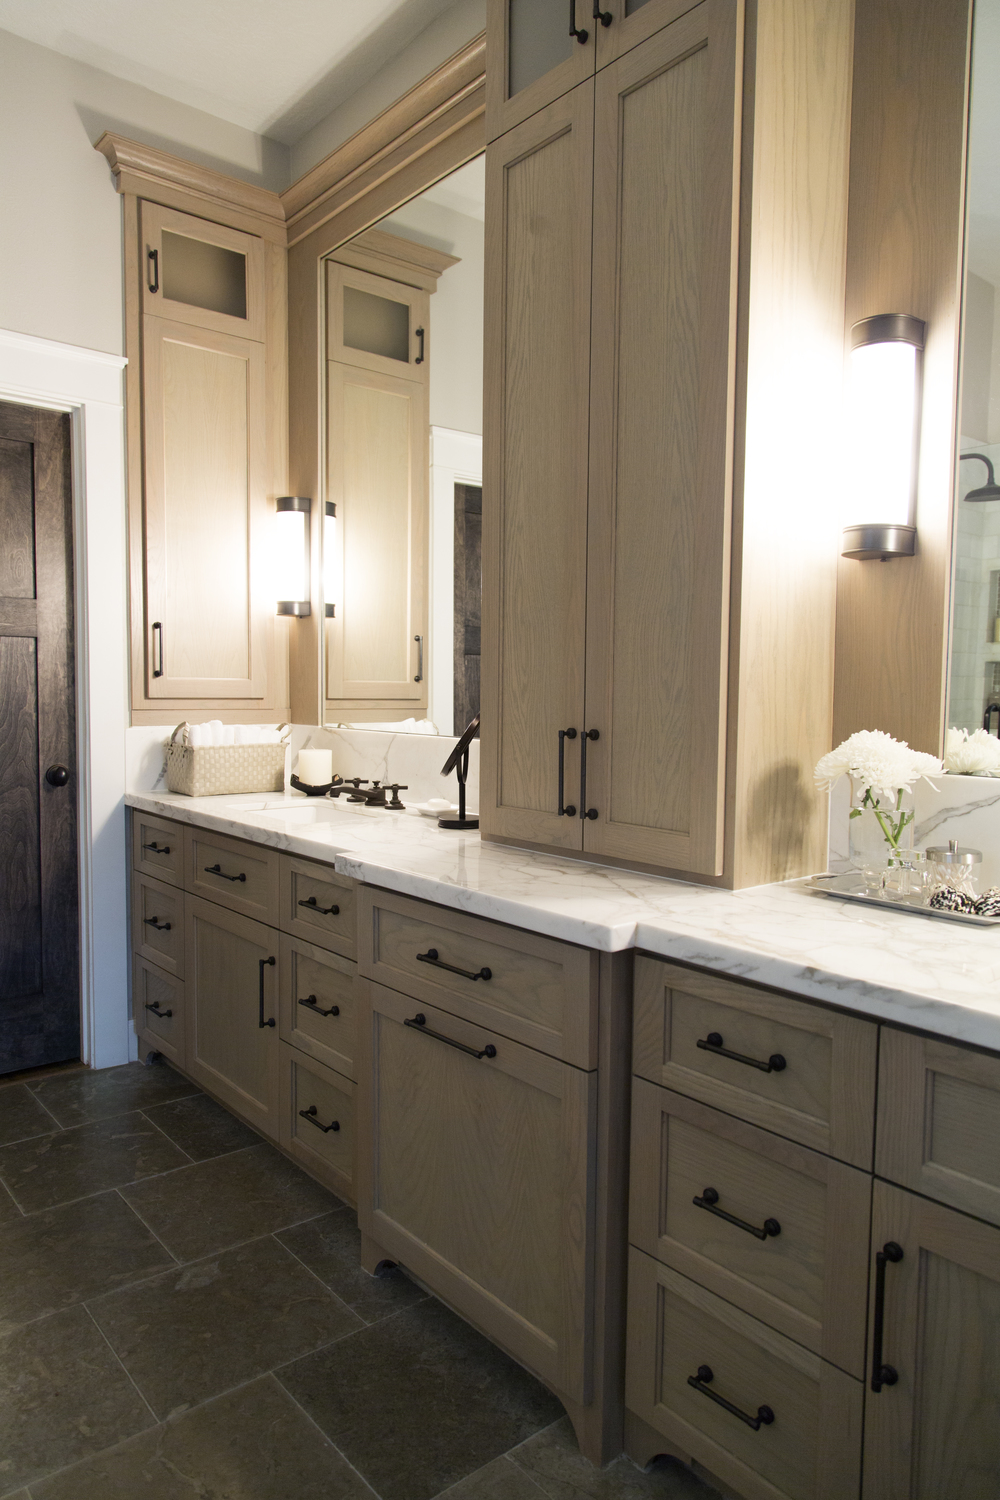 Master bathroom remodel, marble countertop | Interior design -er: Carla Aston - Photographer: Tori Aston http://ToriAston.com